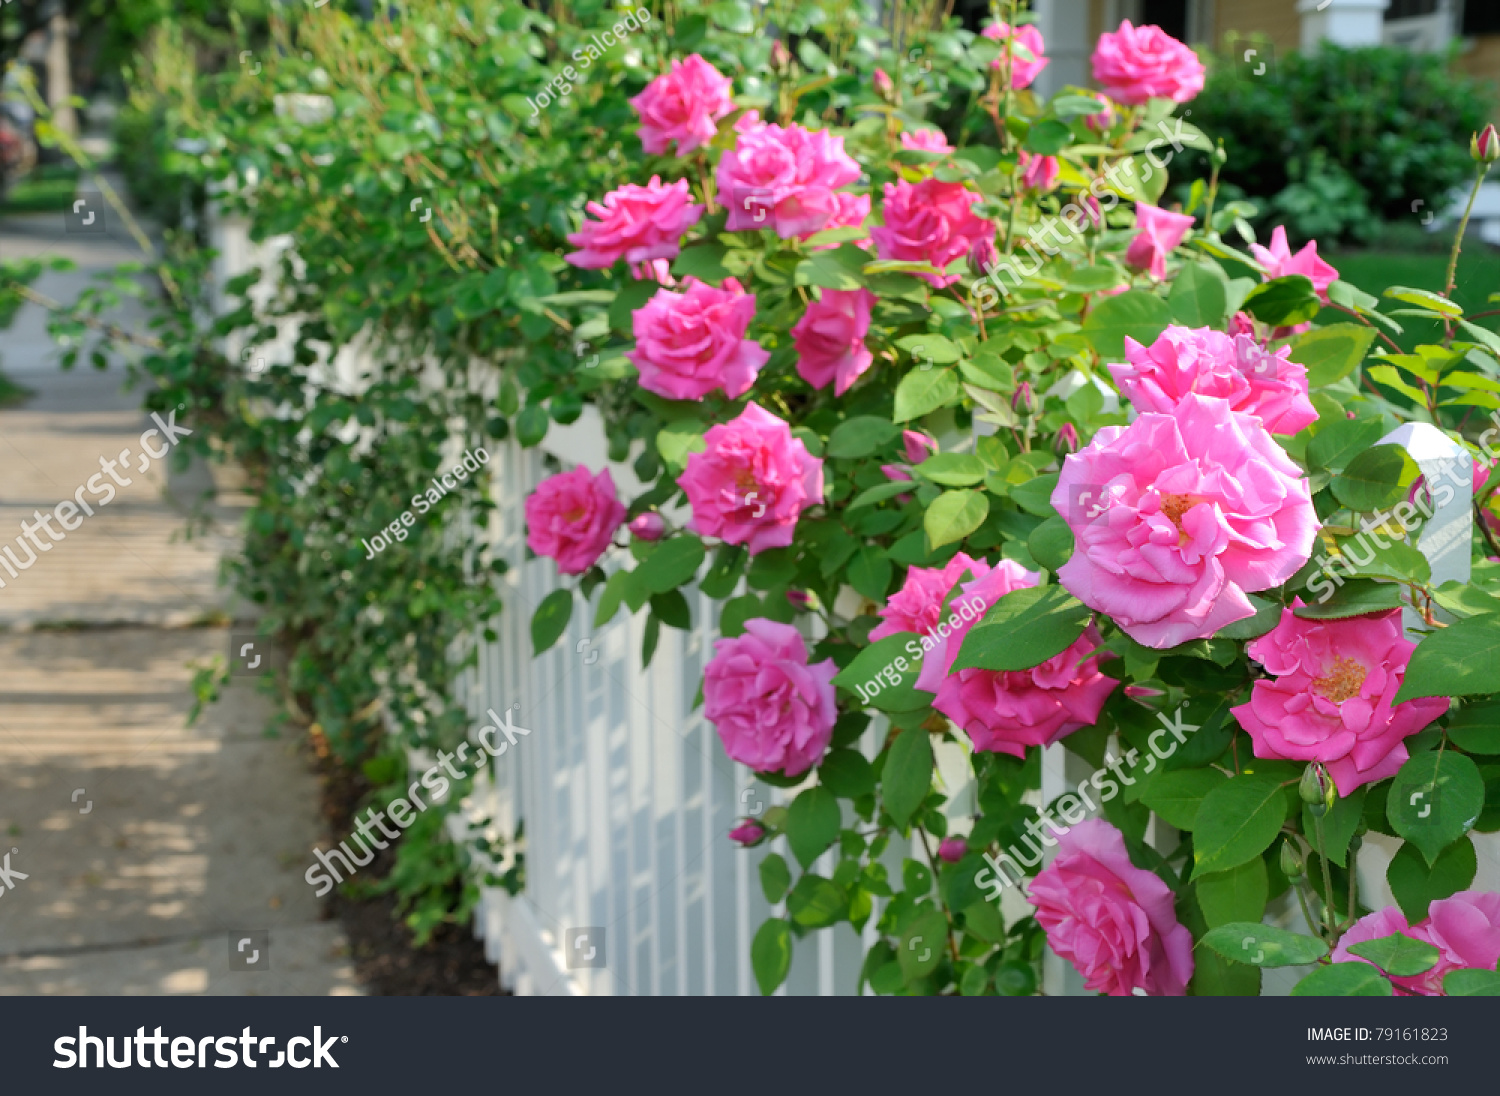 Climbing Pink Roses On White Fence Stock Photo 79161823